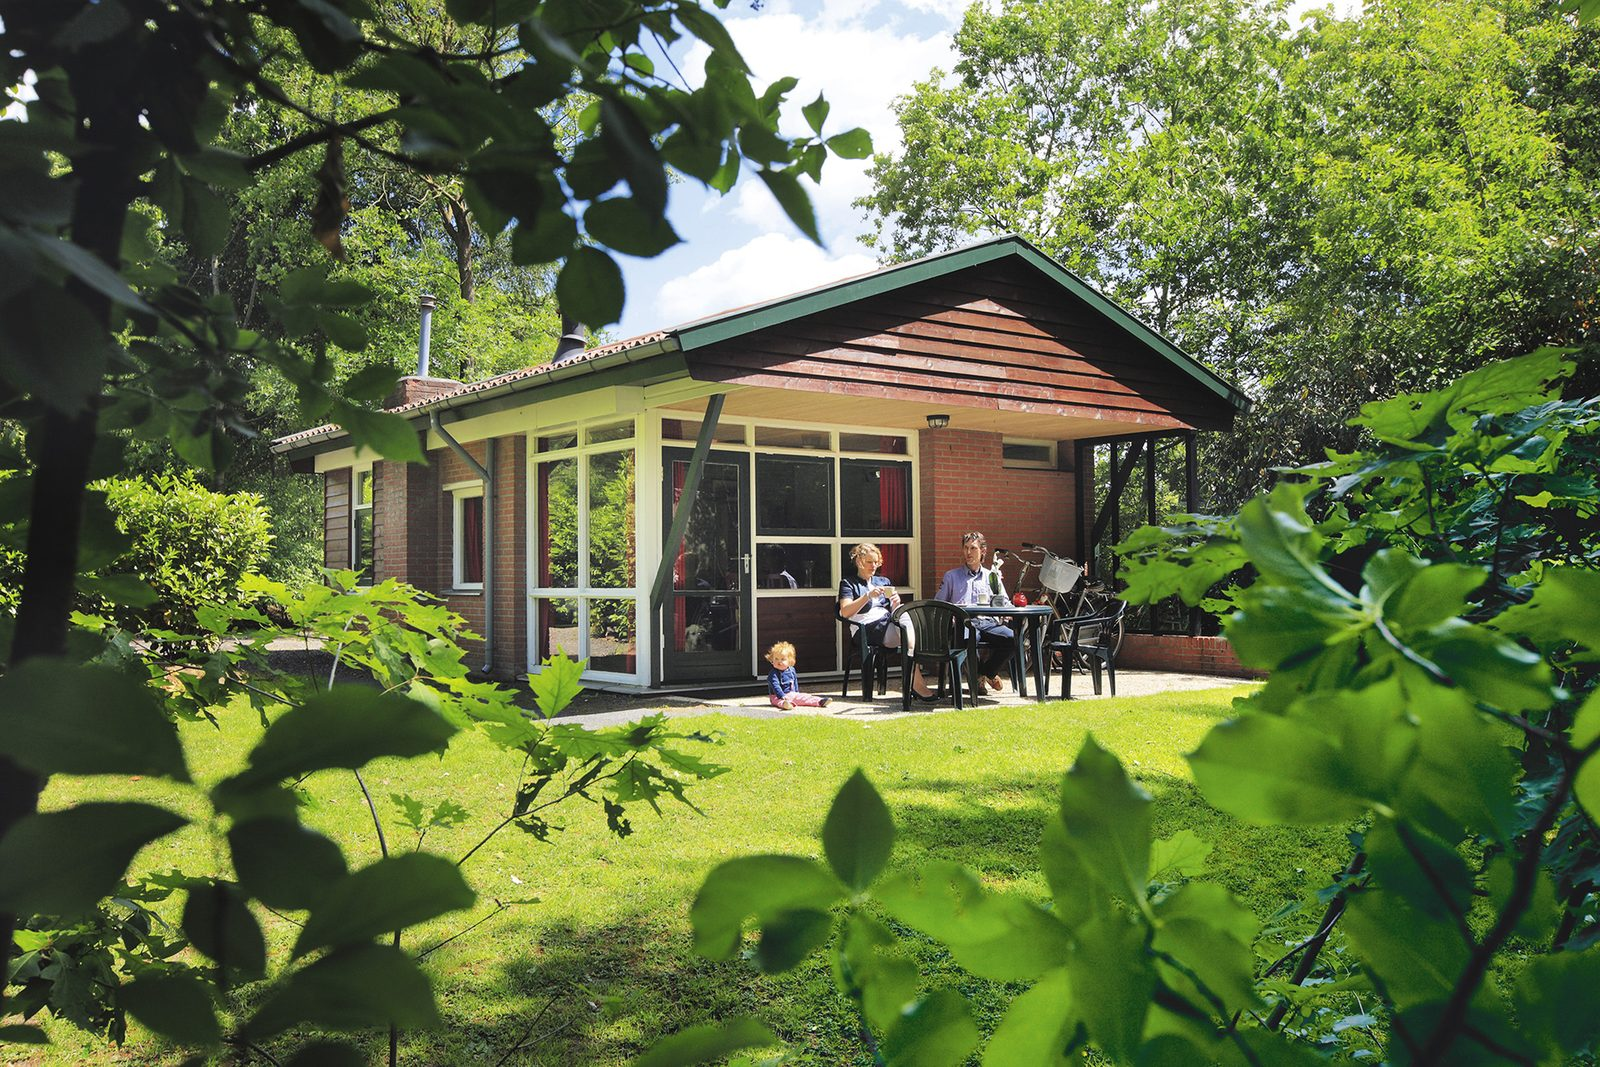 Holiday home in Twente | Holiday Park De Lindenberg